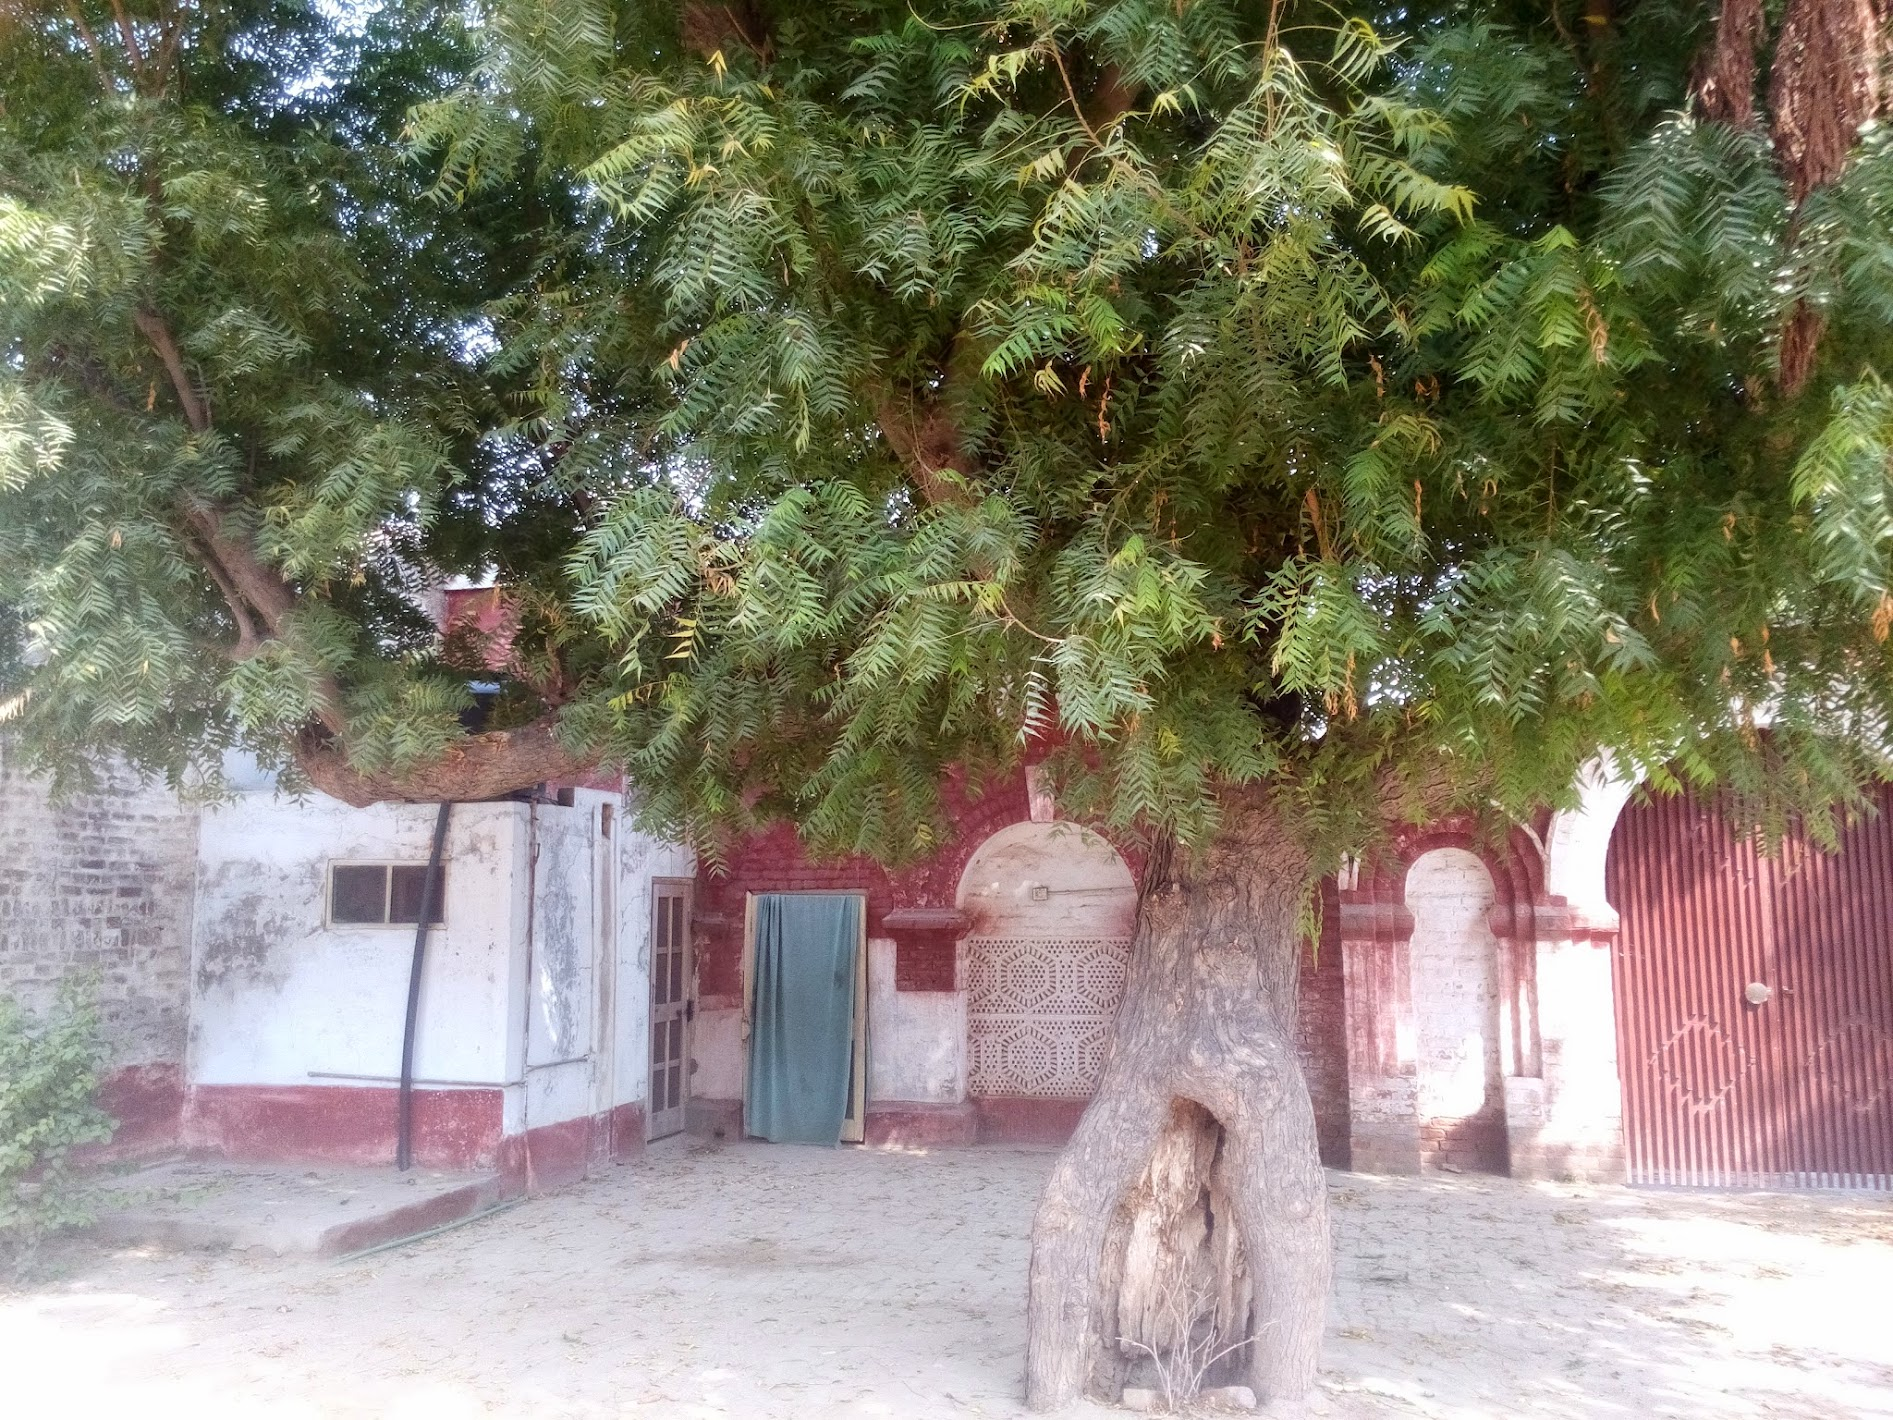 An old tree